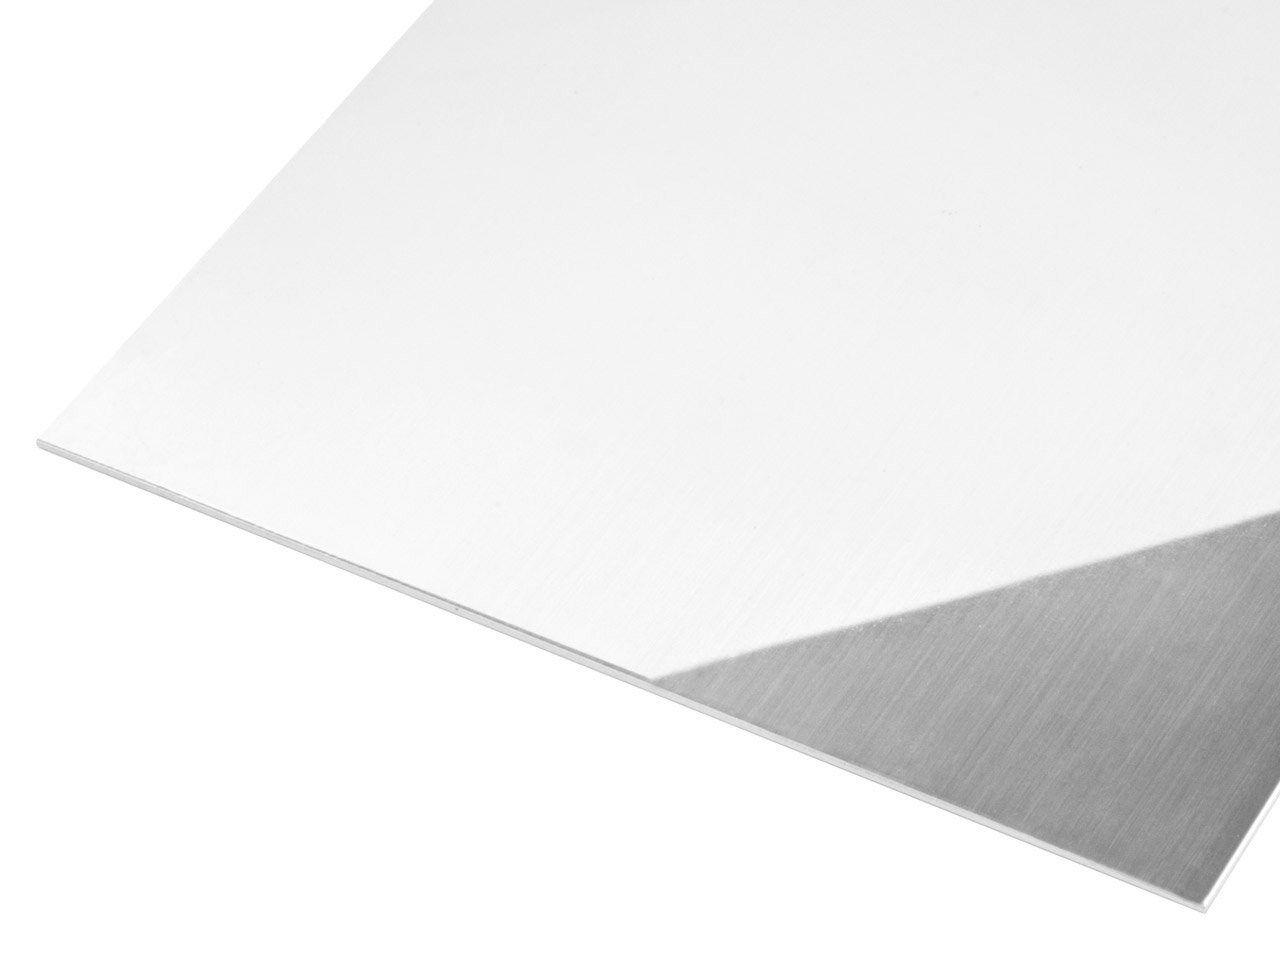 Sterling Silver Strip 0.20mm Thick, Fully Annealed Soft